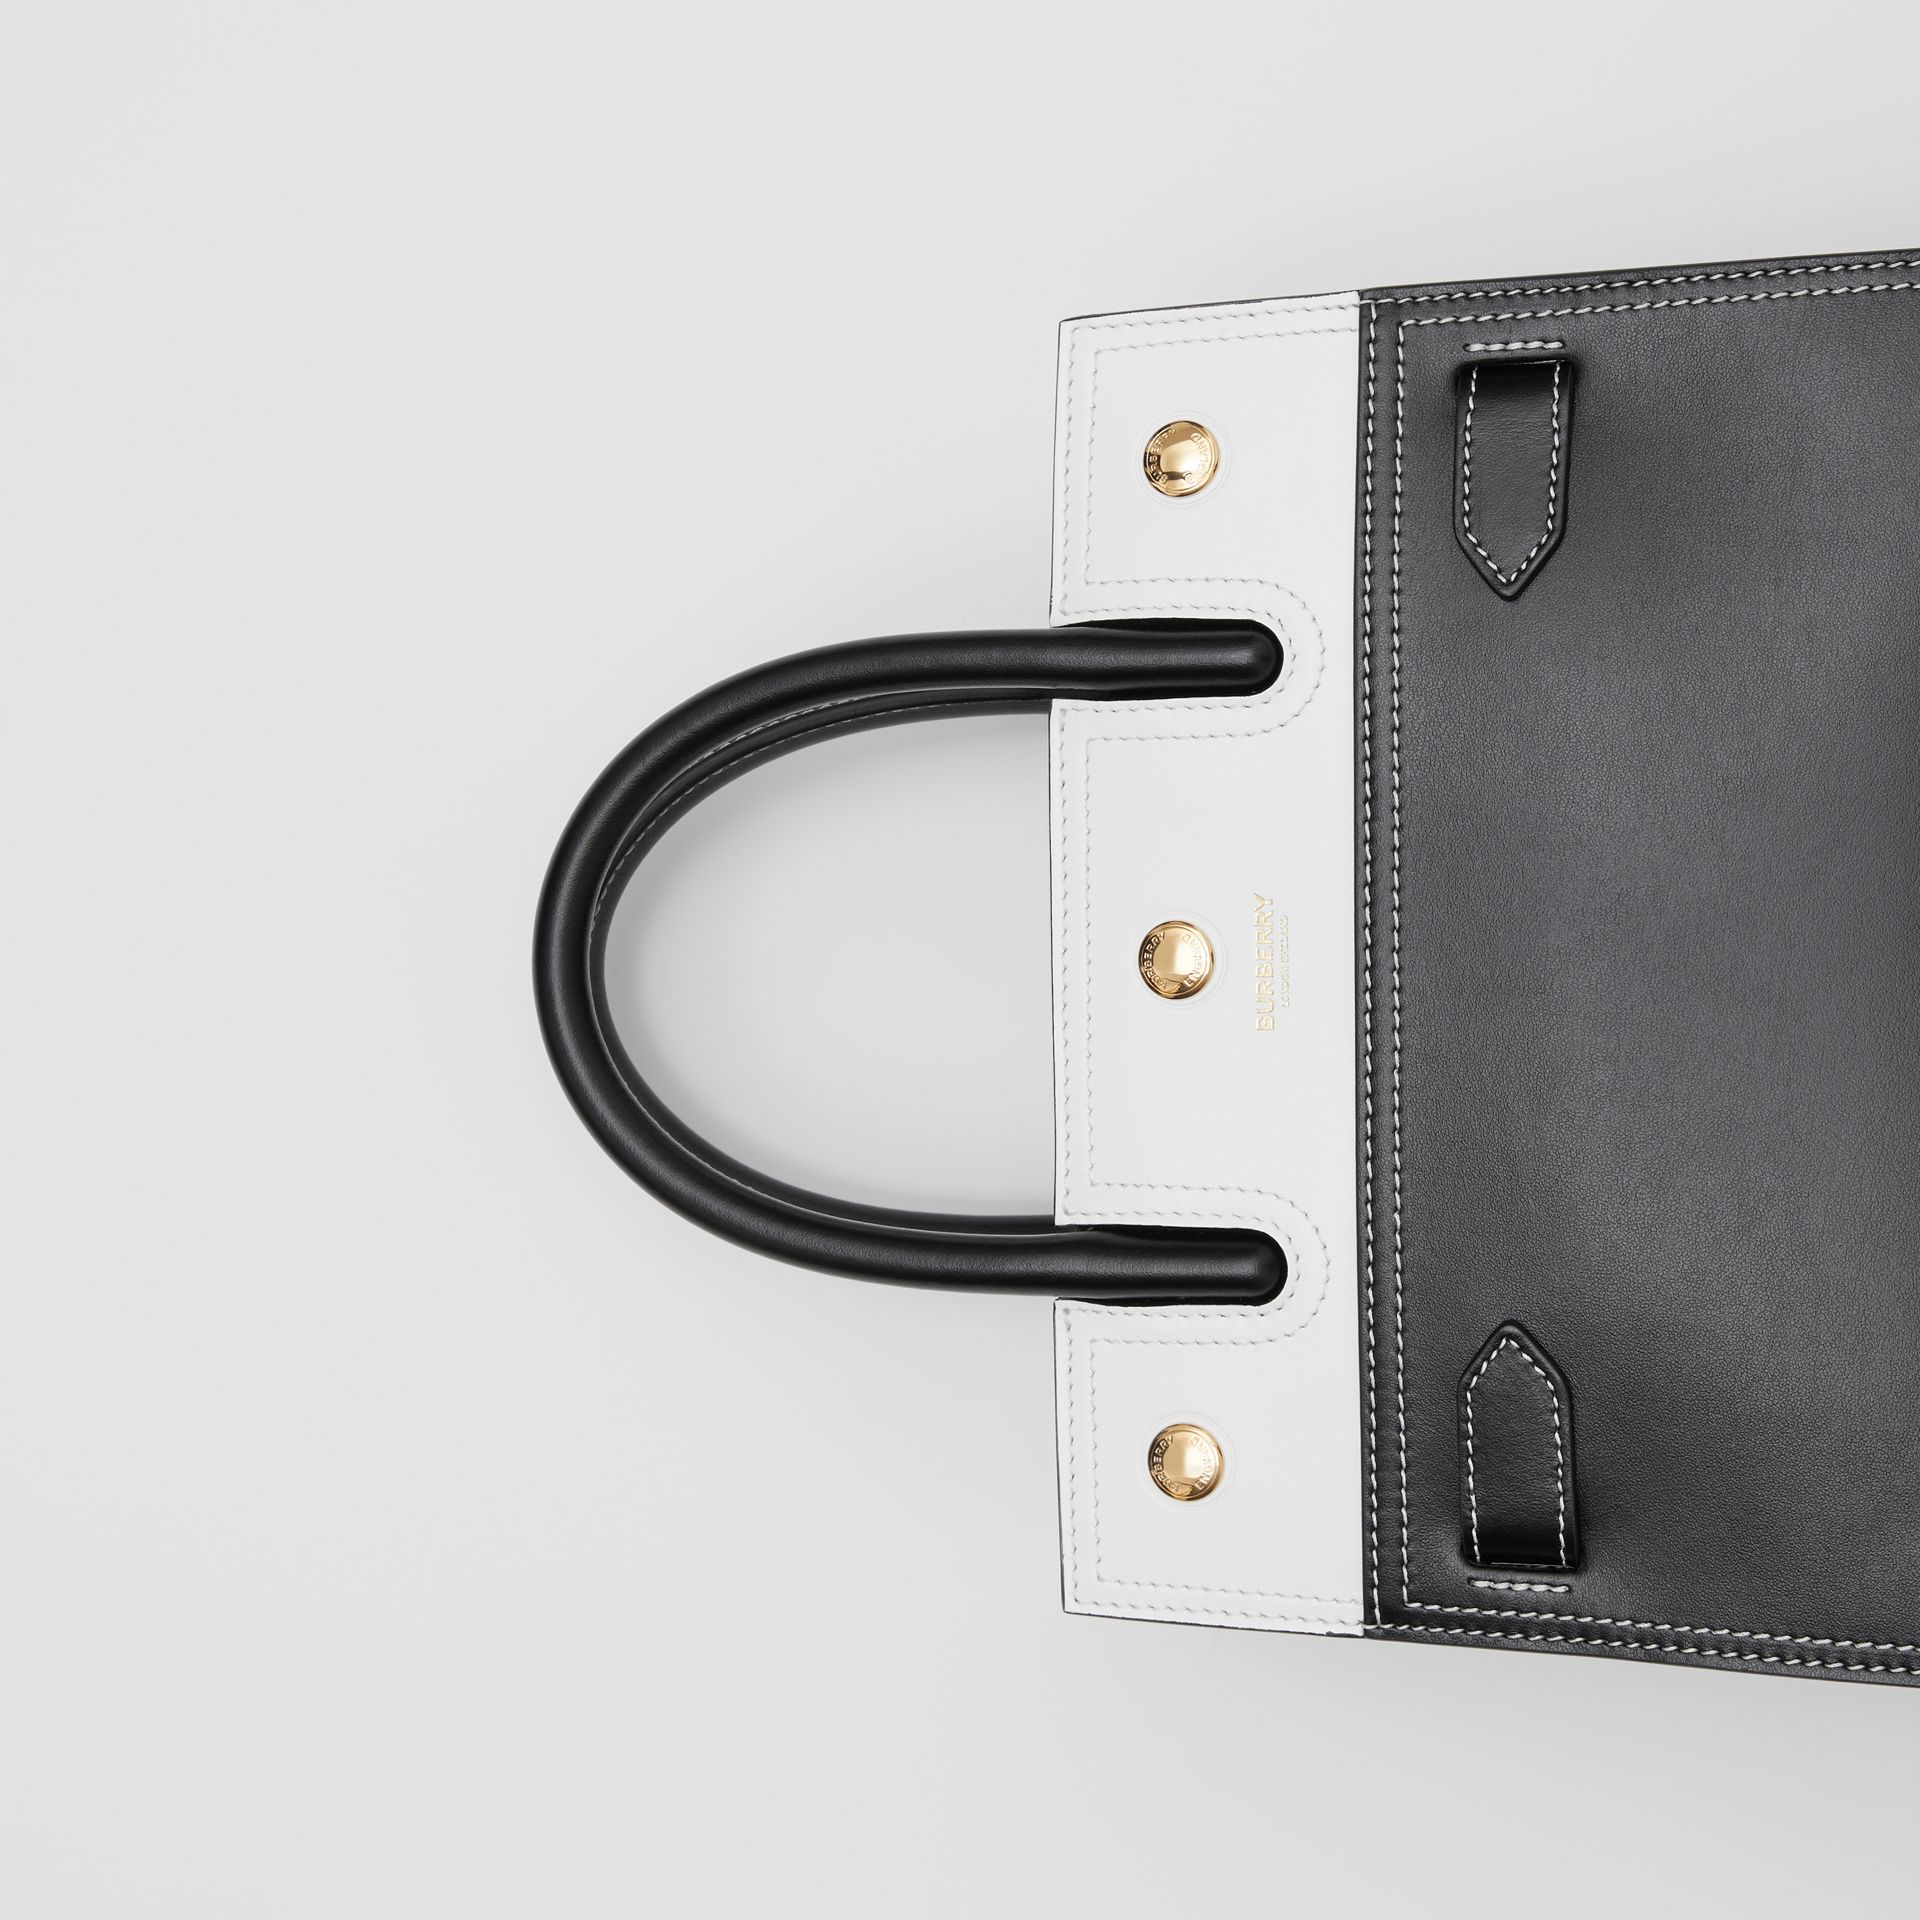 Mini Leather Two-handle Title Bag in Black/white - Women | Burberry - gallery image 1